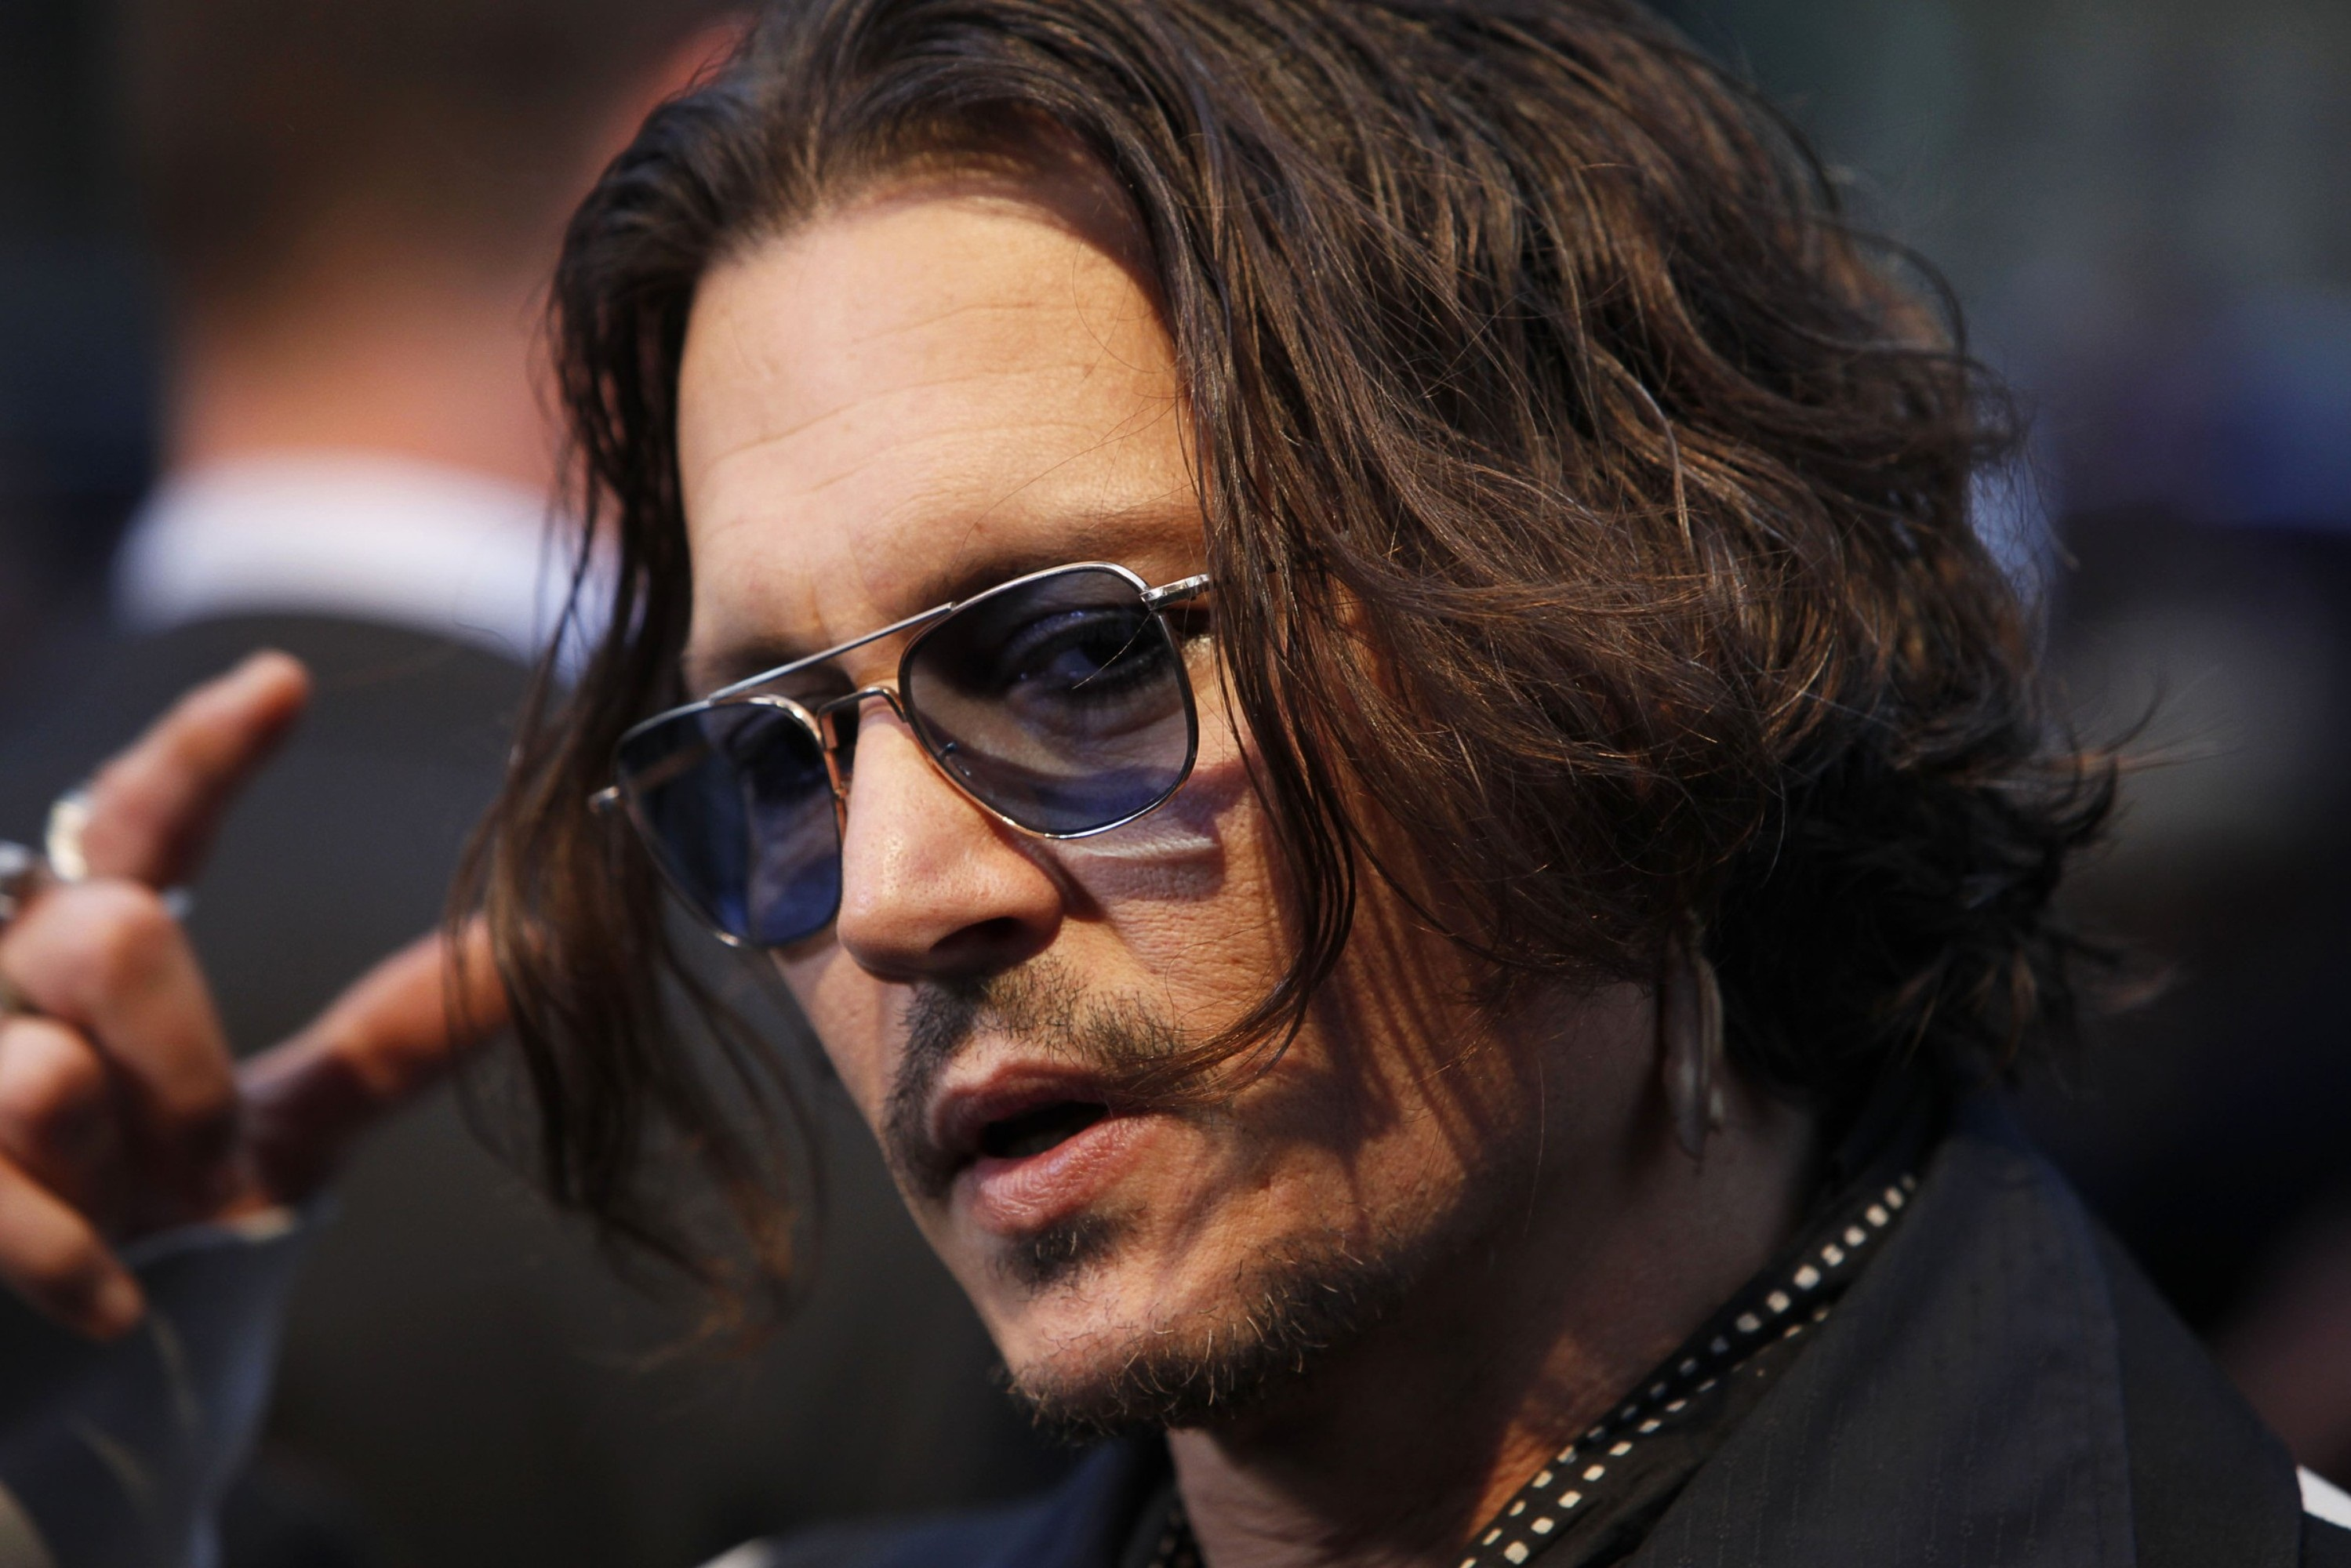 jhonny depp Johnny depp has apologized for a remark he made about assassination.